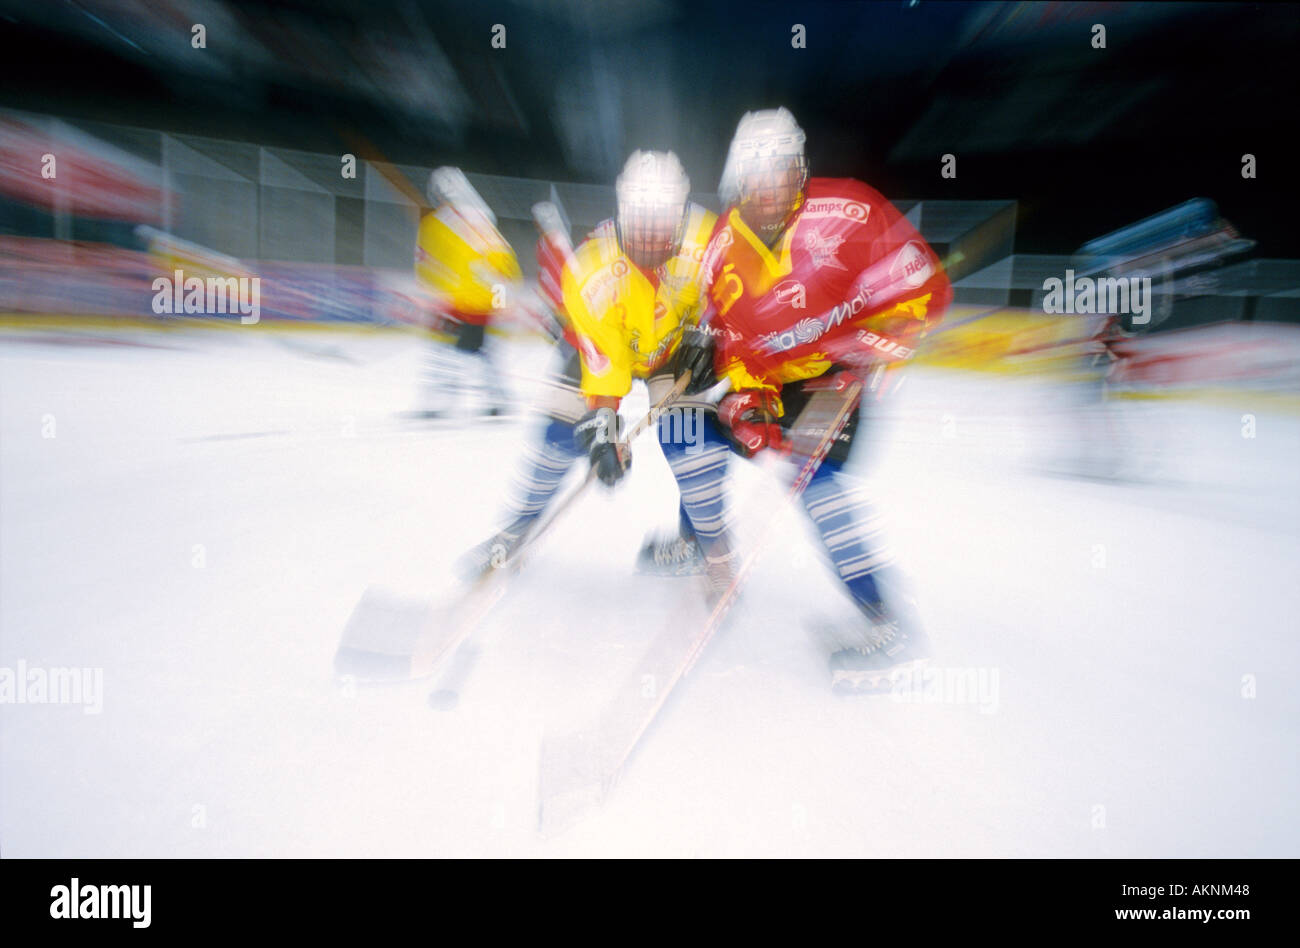 Germany Free time Young persons playing ice hockey  - Stock Image